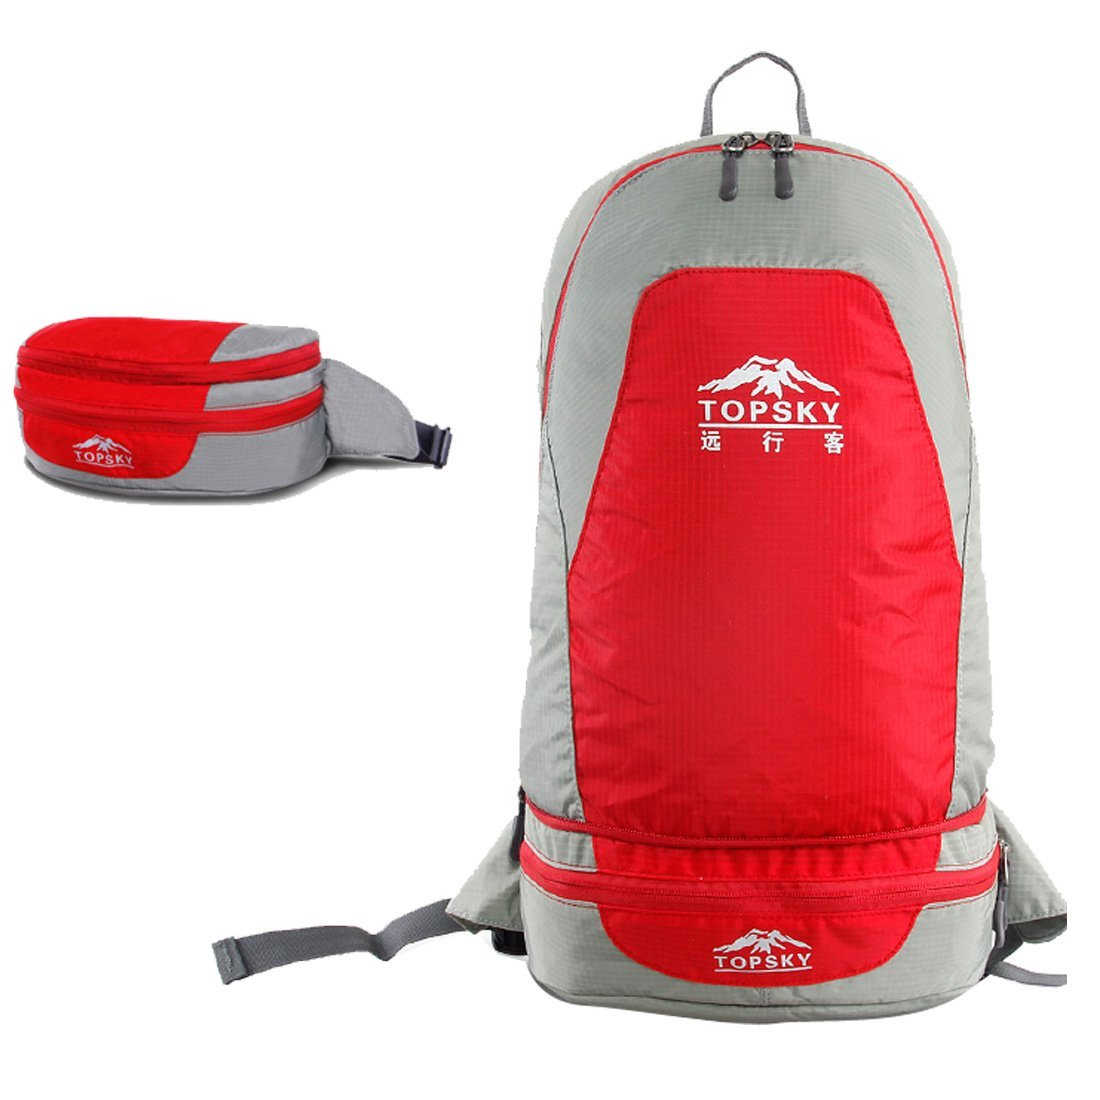 Oxking Topsky Outdoor Hiking Climbing Clycling Canvas Backpack Foldable Ultralight Daypacks Waterproof Professional Mountaineering Backpack T33602 Shoulder Travel Skin Backpack 20L Picnic Backpacks Unisex Trekking Travel Waist Bag Rucksack Multi Colors (Red)